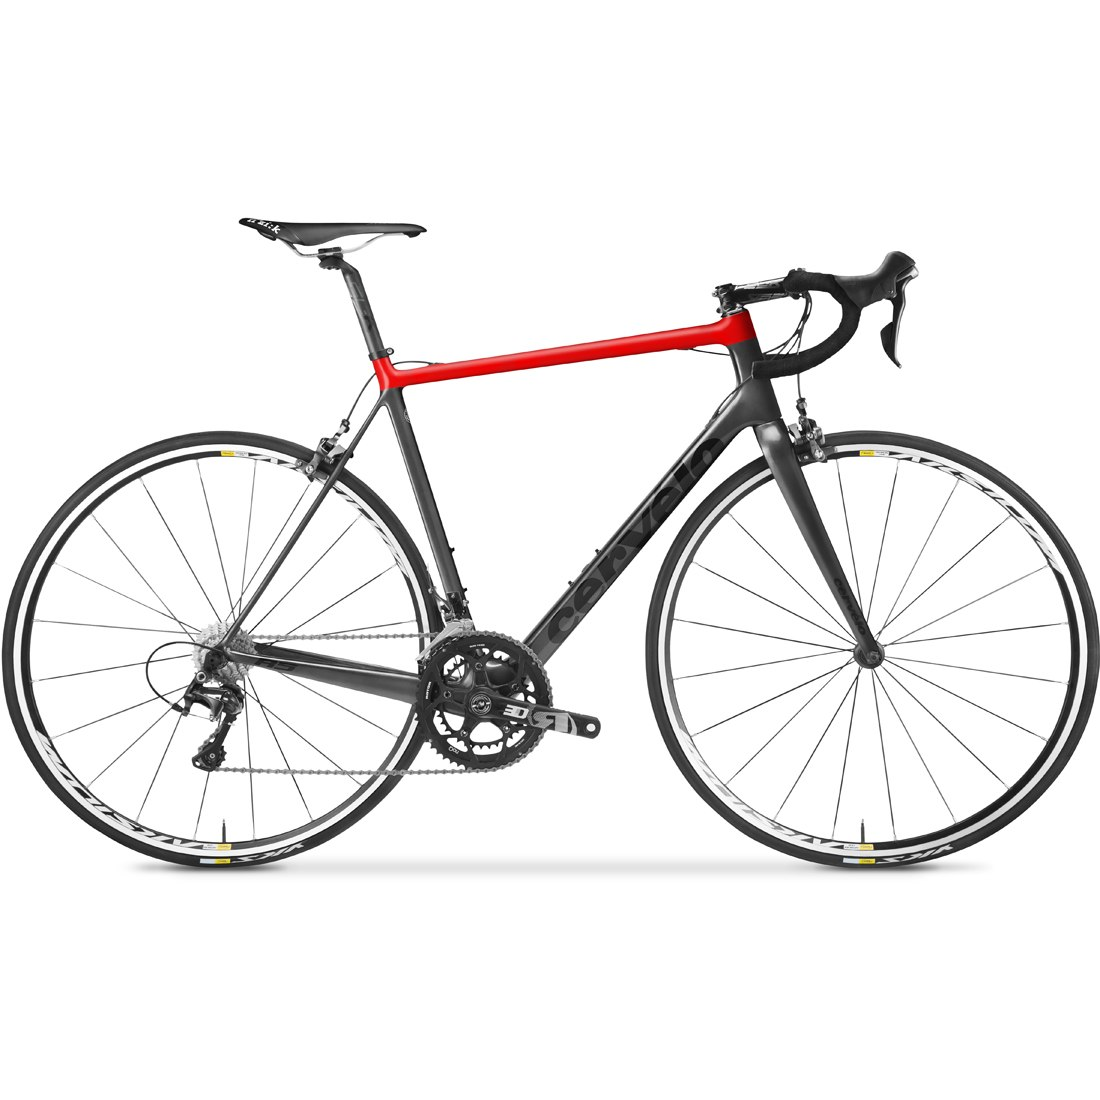 2017 CERVELO R5 DURA ACE DI2 22G ROAD BIKE